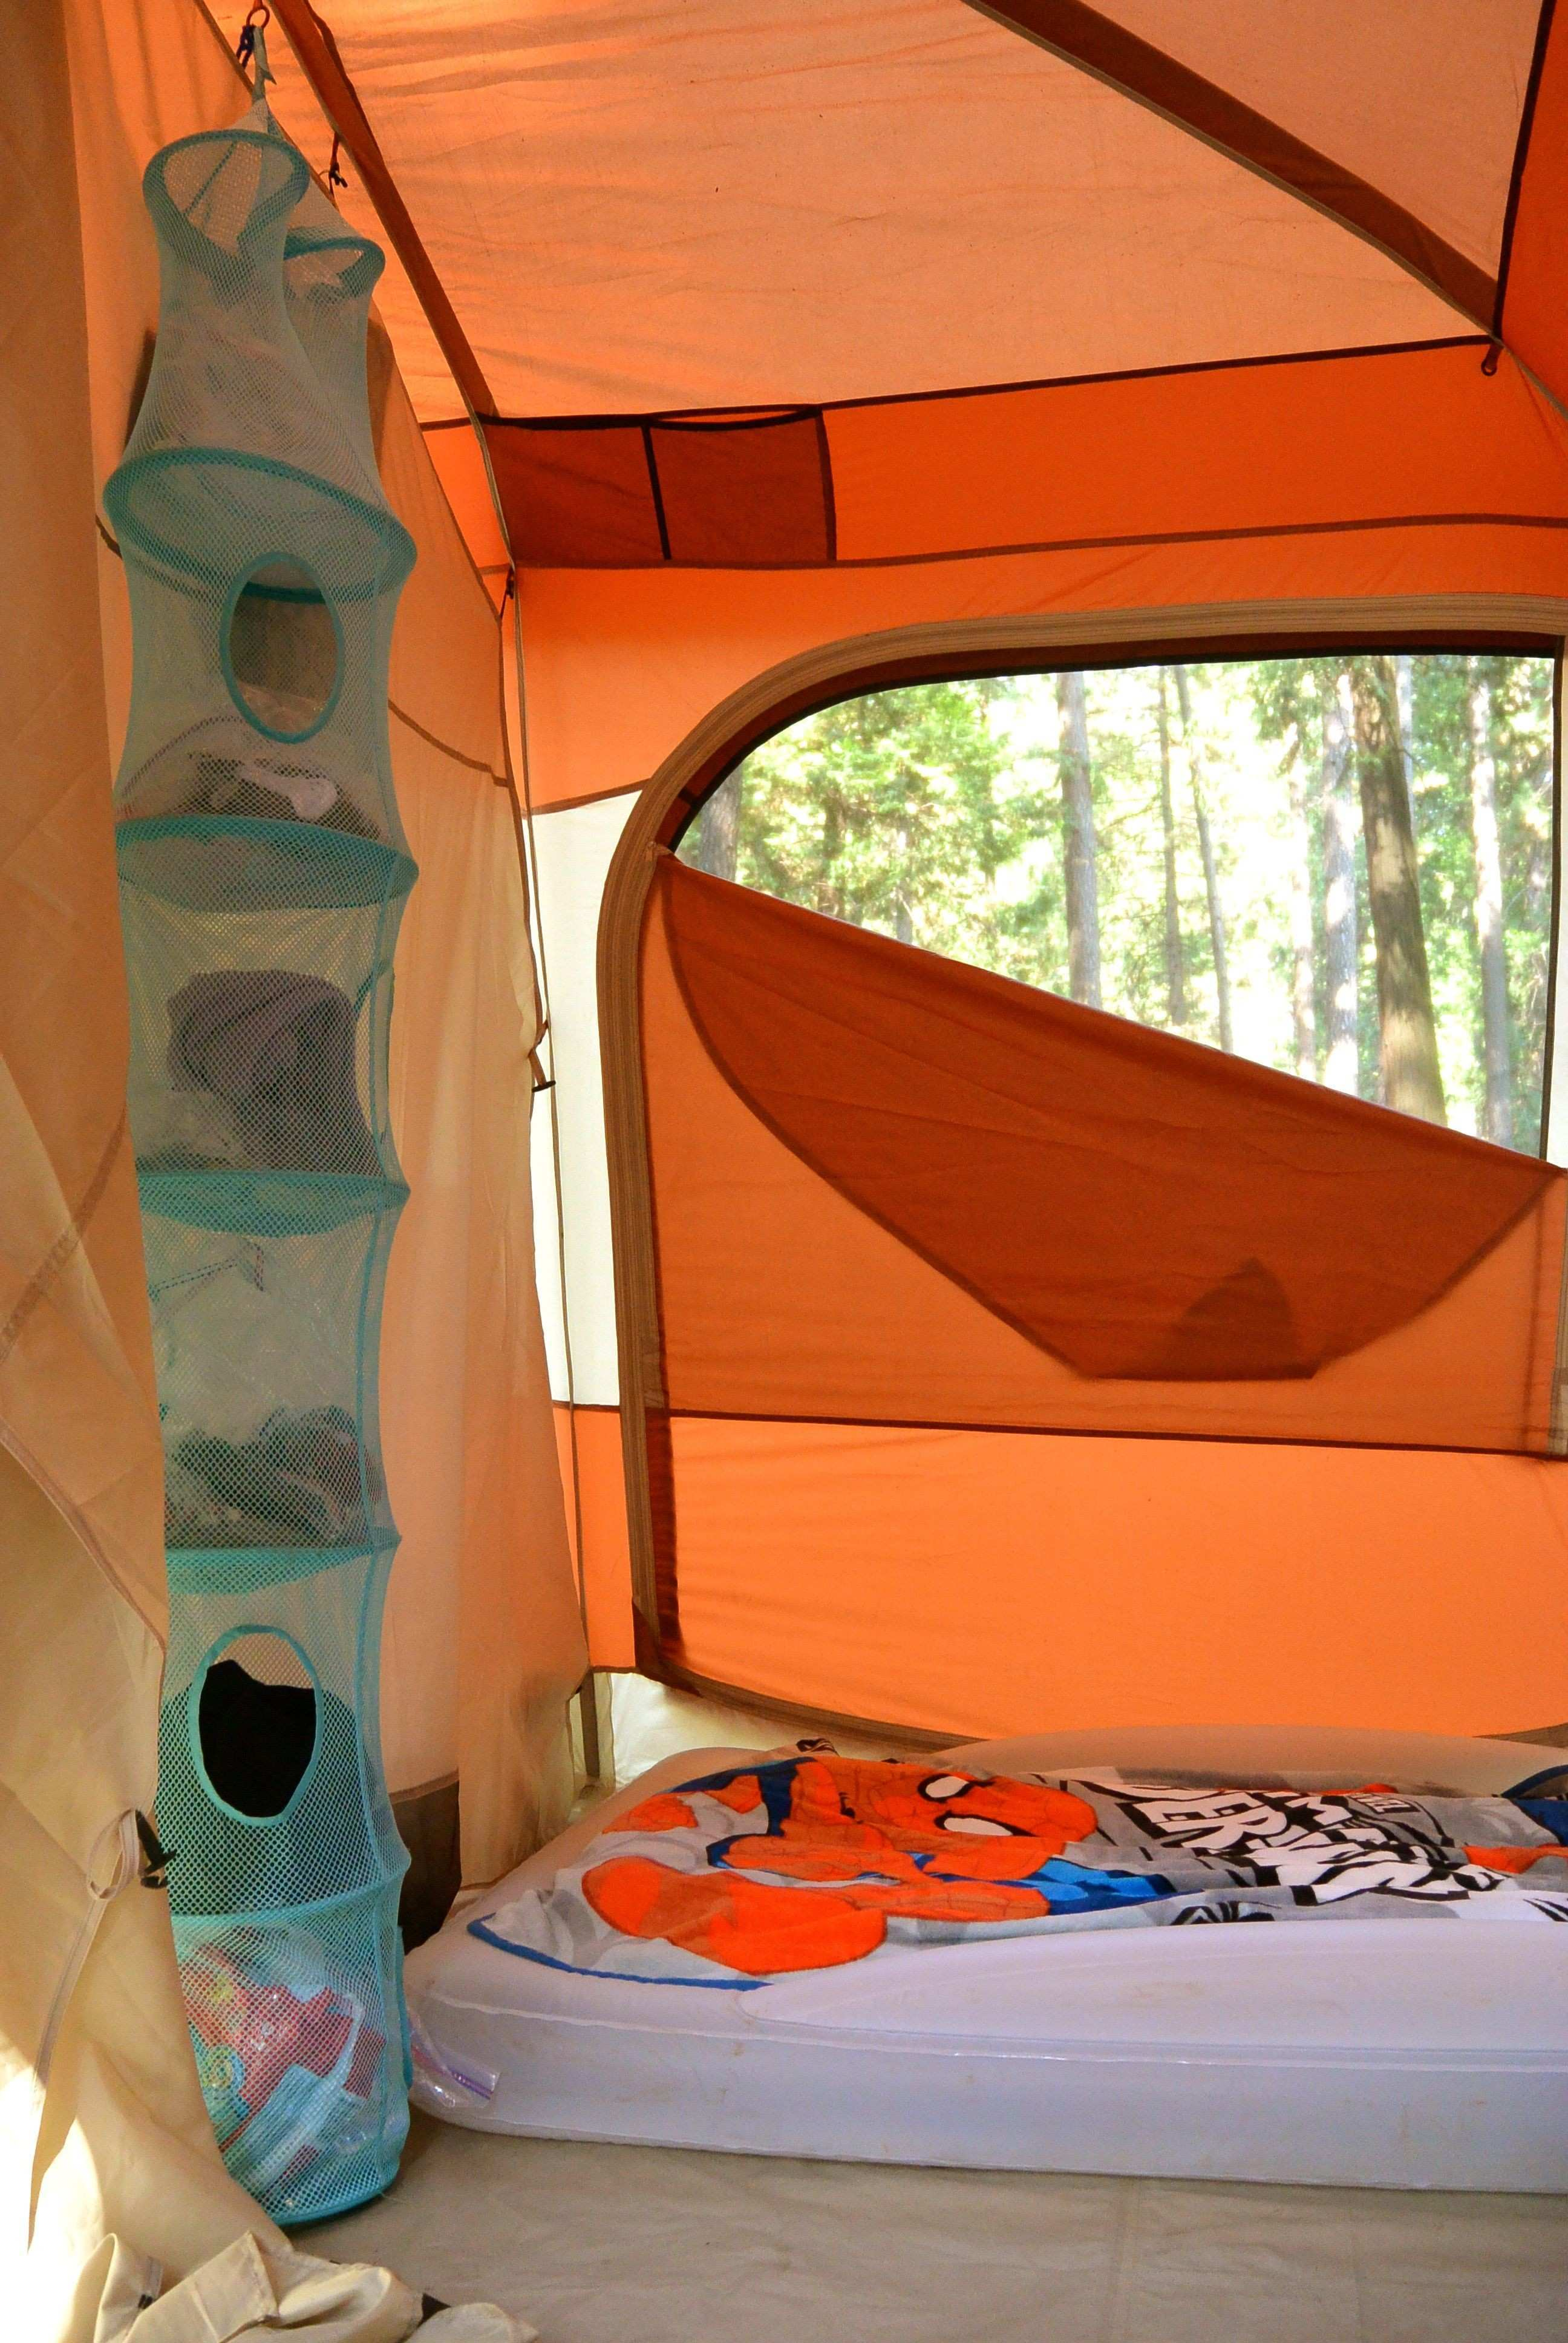 Hanging Storage For Clothing & Other Stuff Camping Hacks